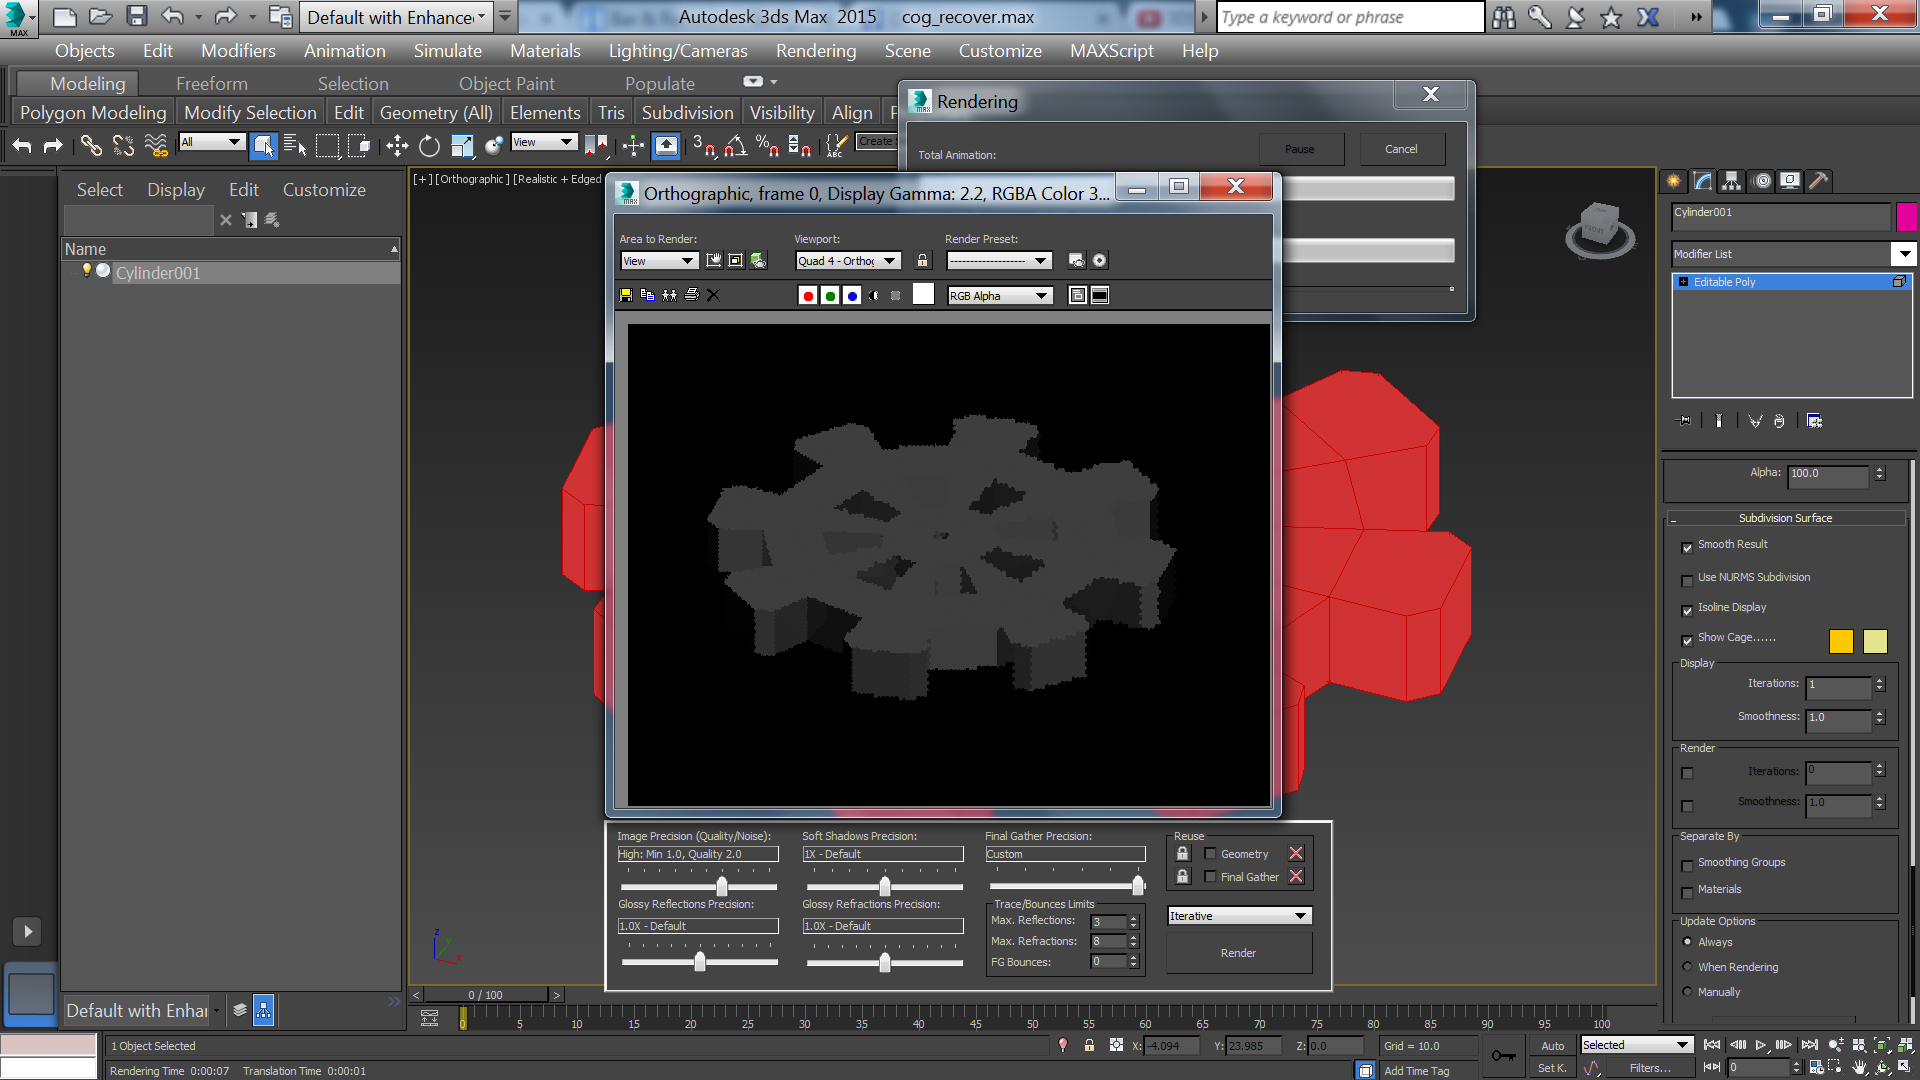 Rendering issues - Autodesk Community- 3ds Max